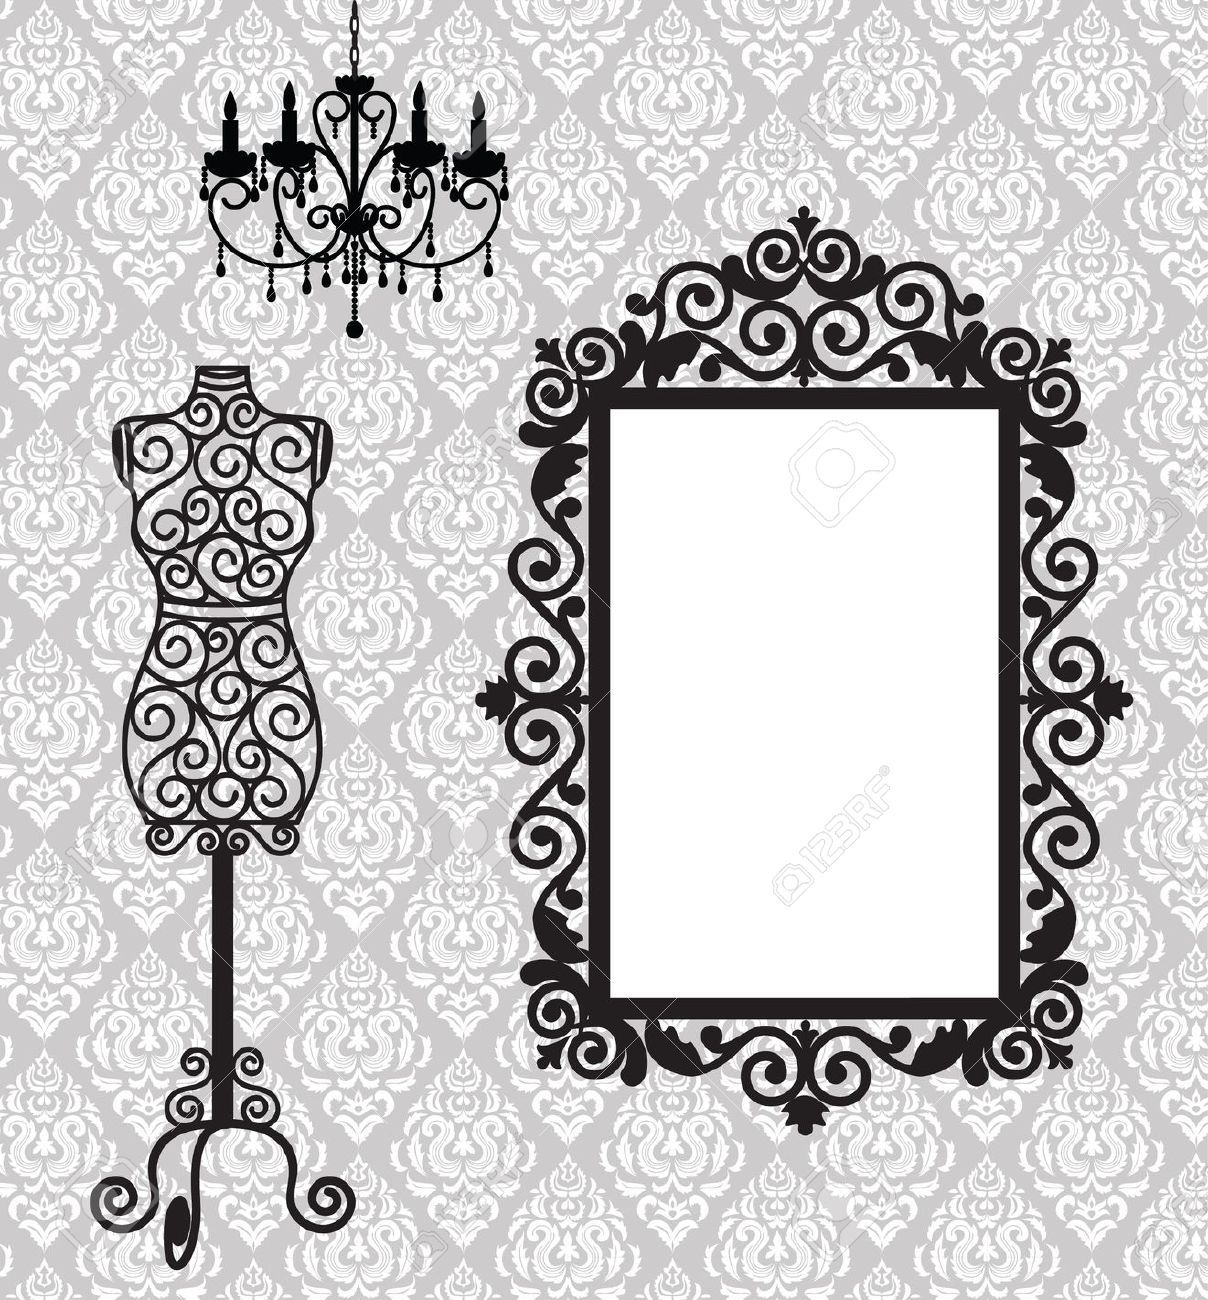 Stock Vector in 2020 Antique frames, Sewing art